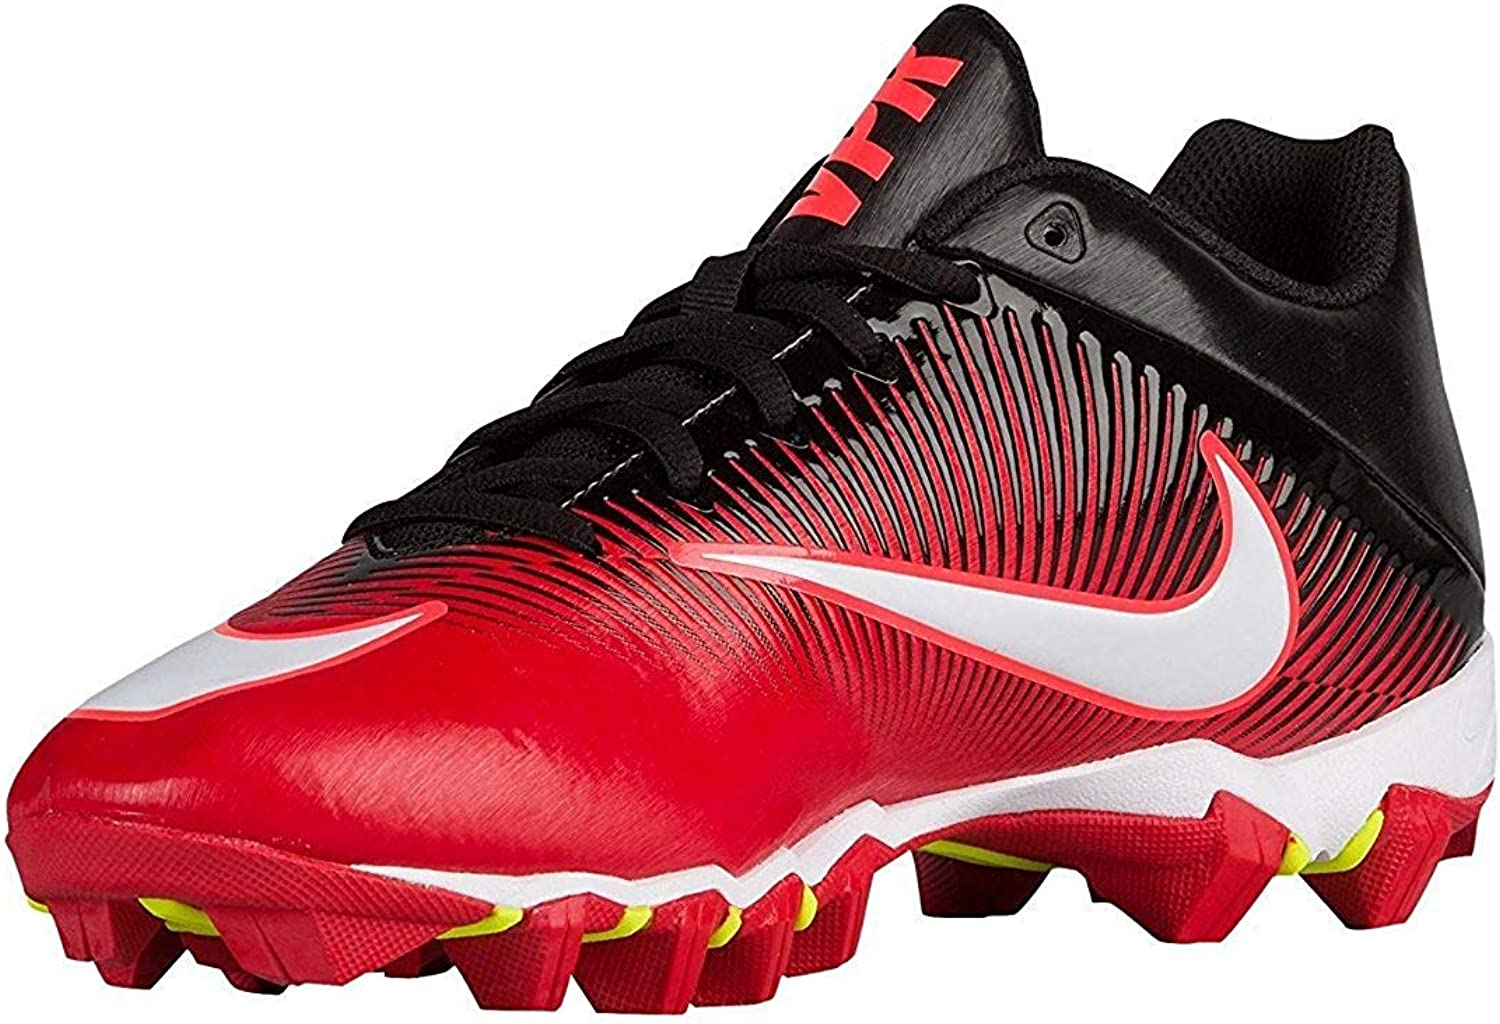 red vapor cleats